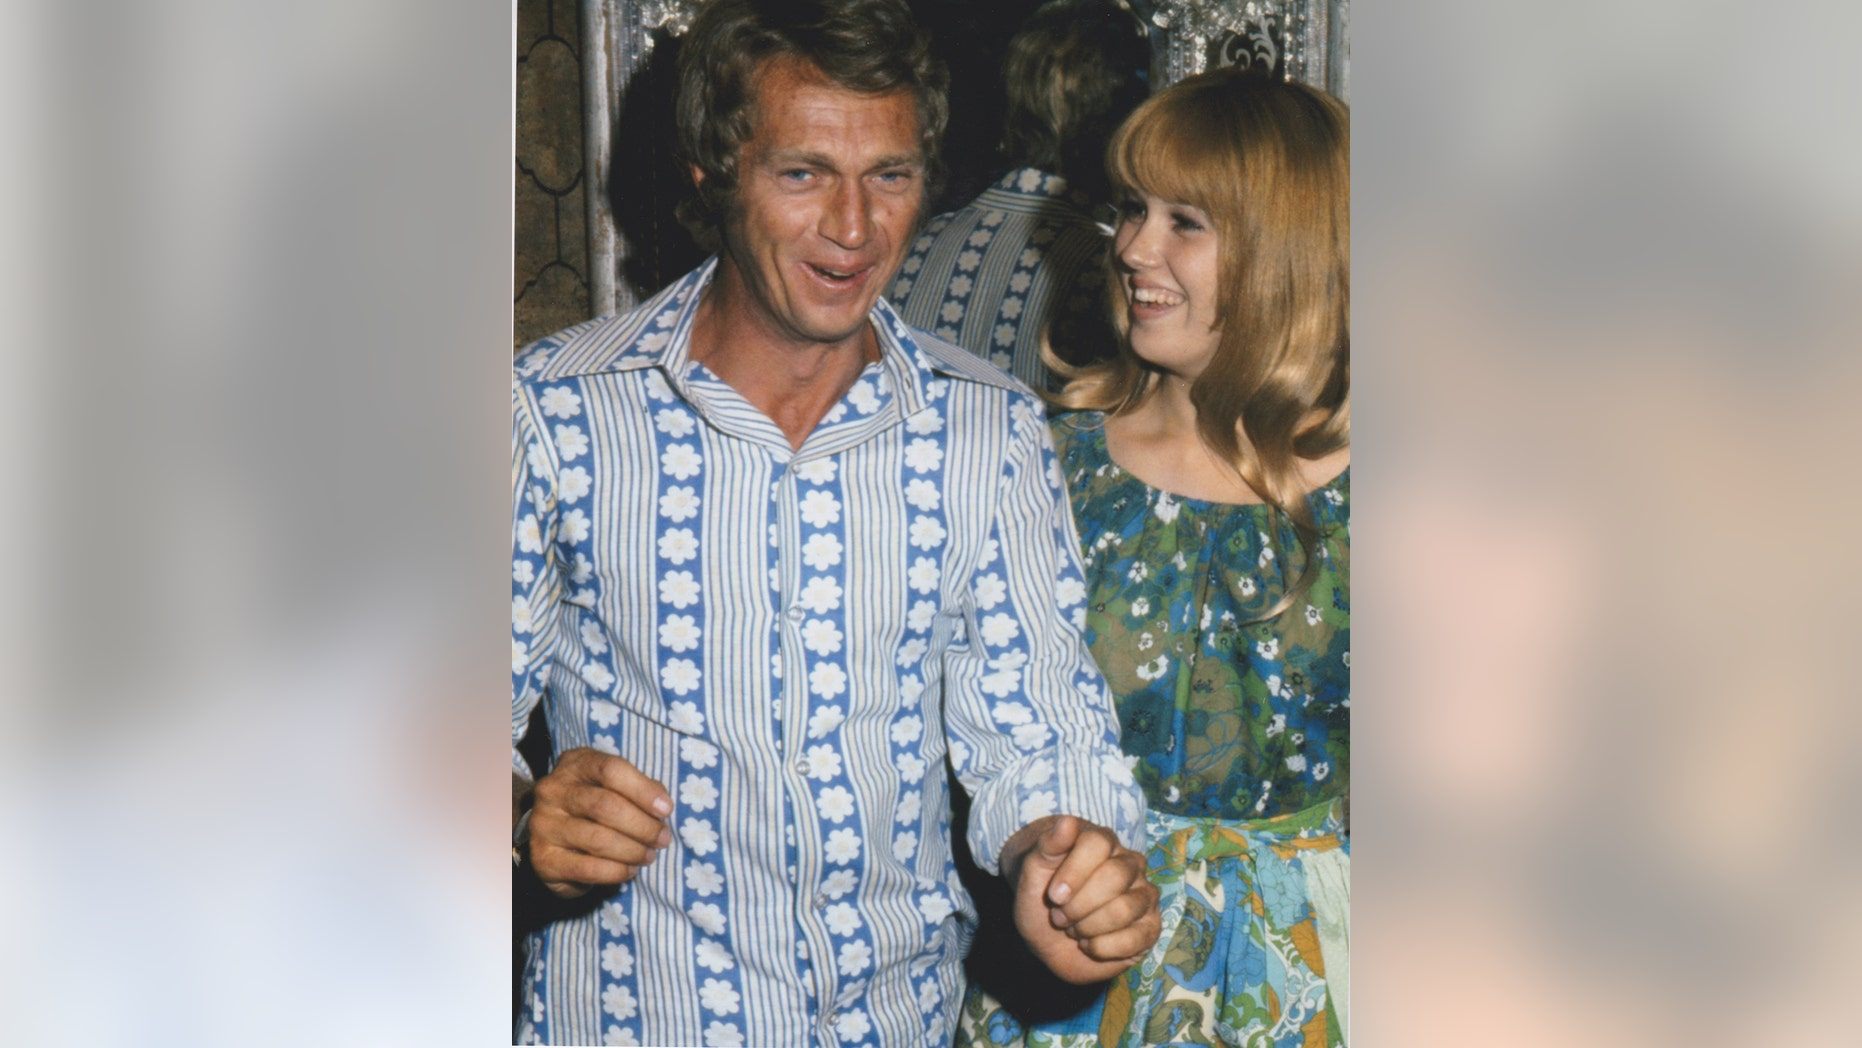 Actress Lee Purcell (right) was personally mentored by late movie icon Steve McQueen.